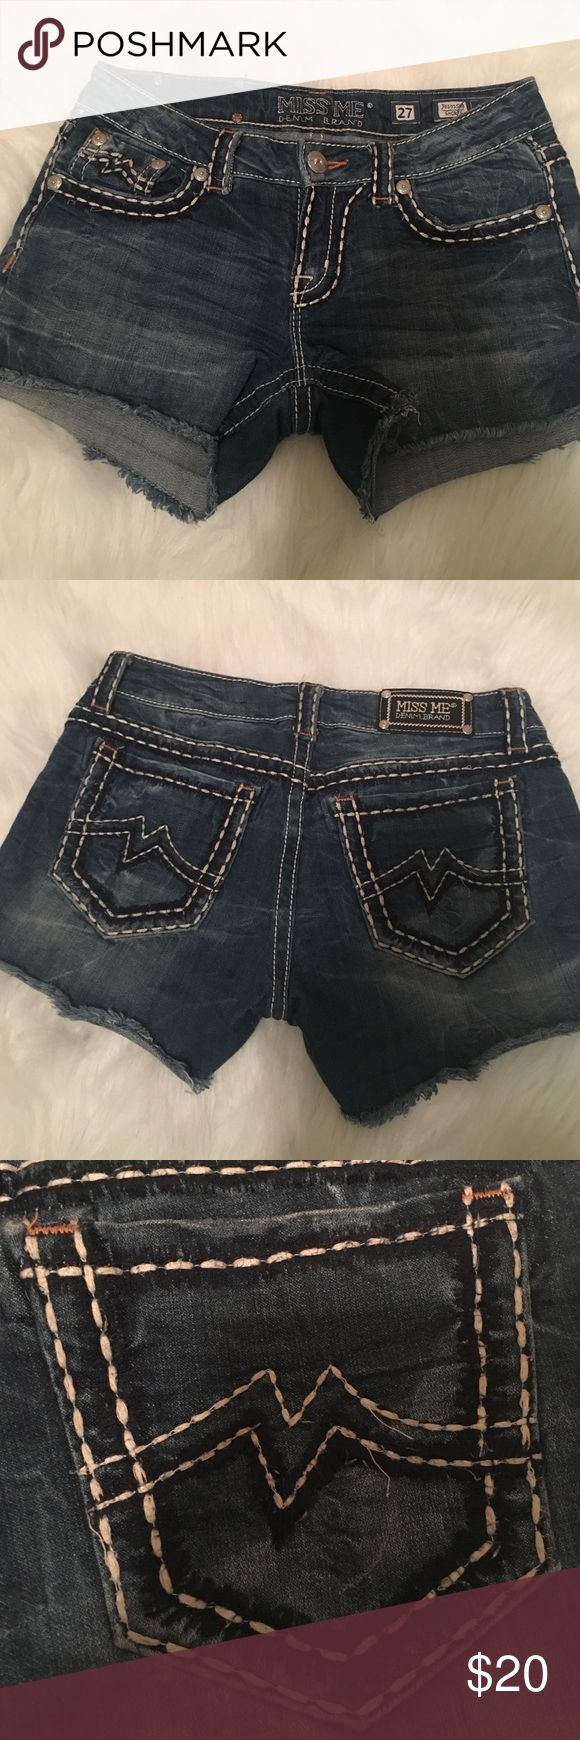 Miss Me denim shorts Dark denim Miss Me brand frayed shirts - a little wear to the threading but nothing that can't be snipped off or fixed. Size 27 Miss Me Shorts Jean Shorts